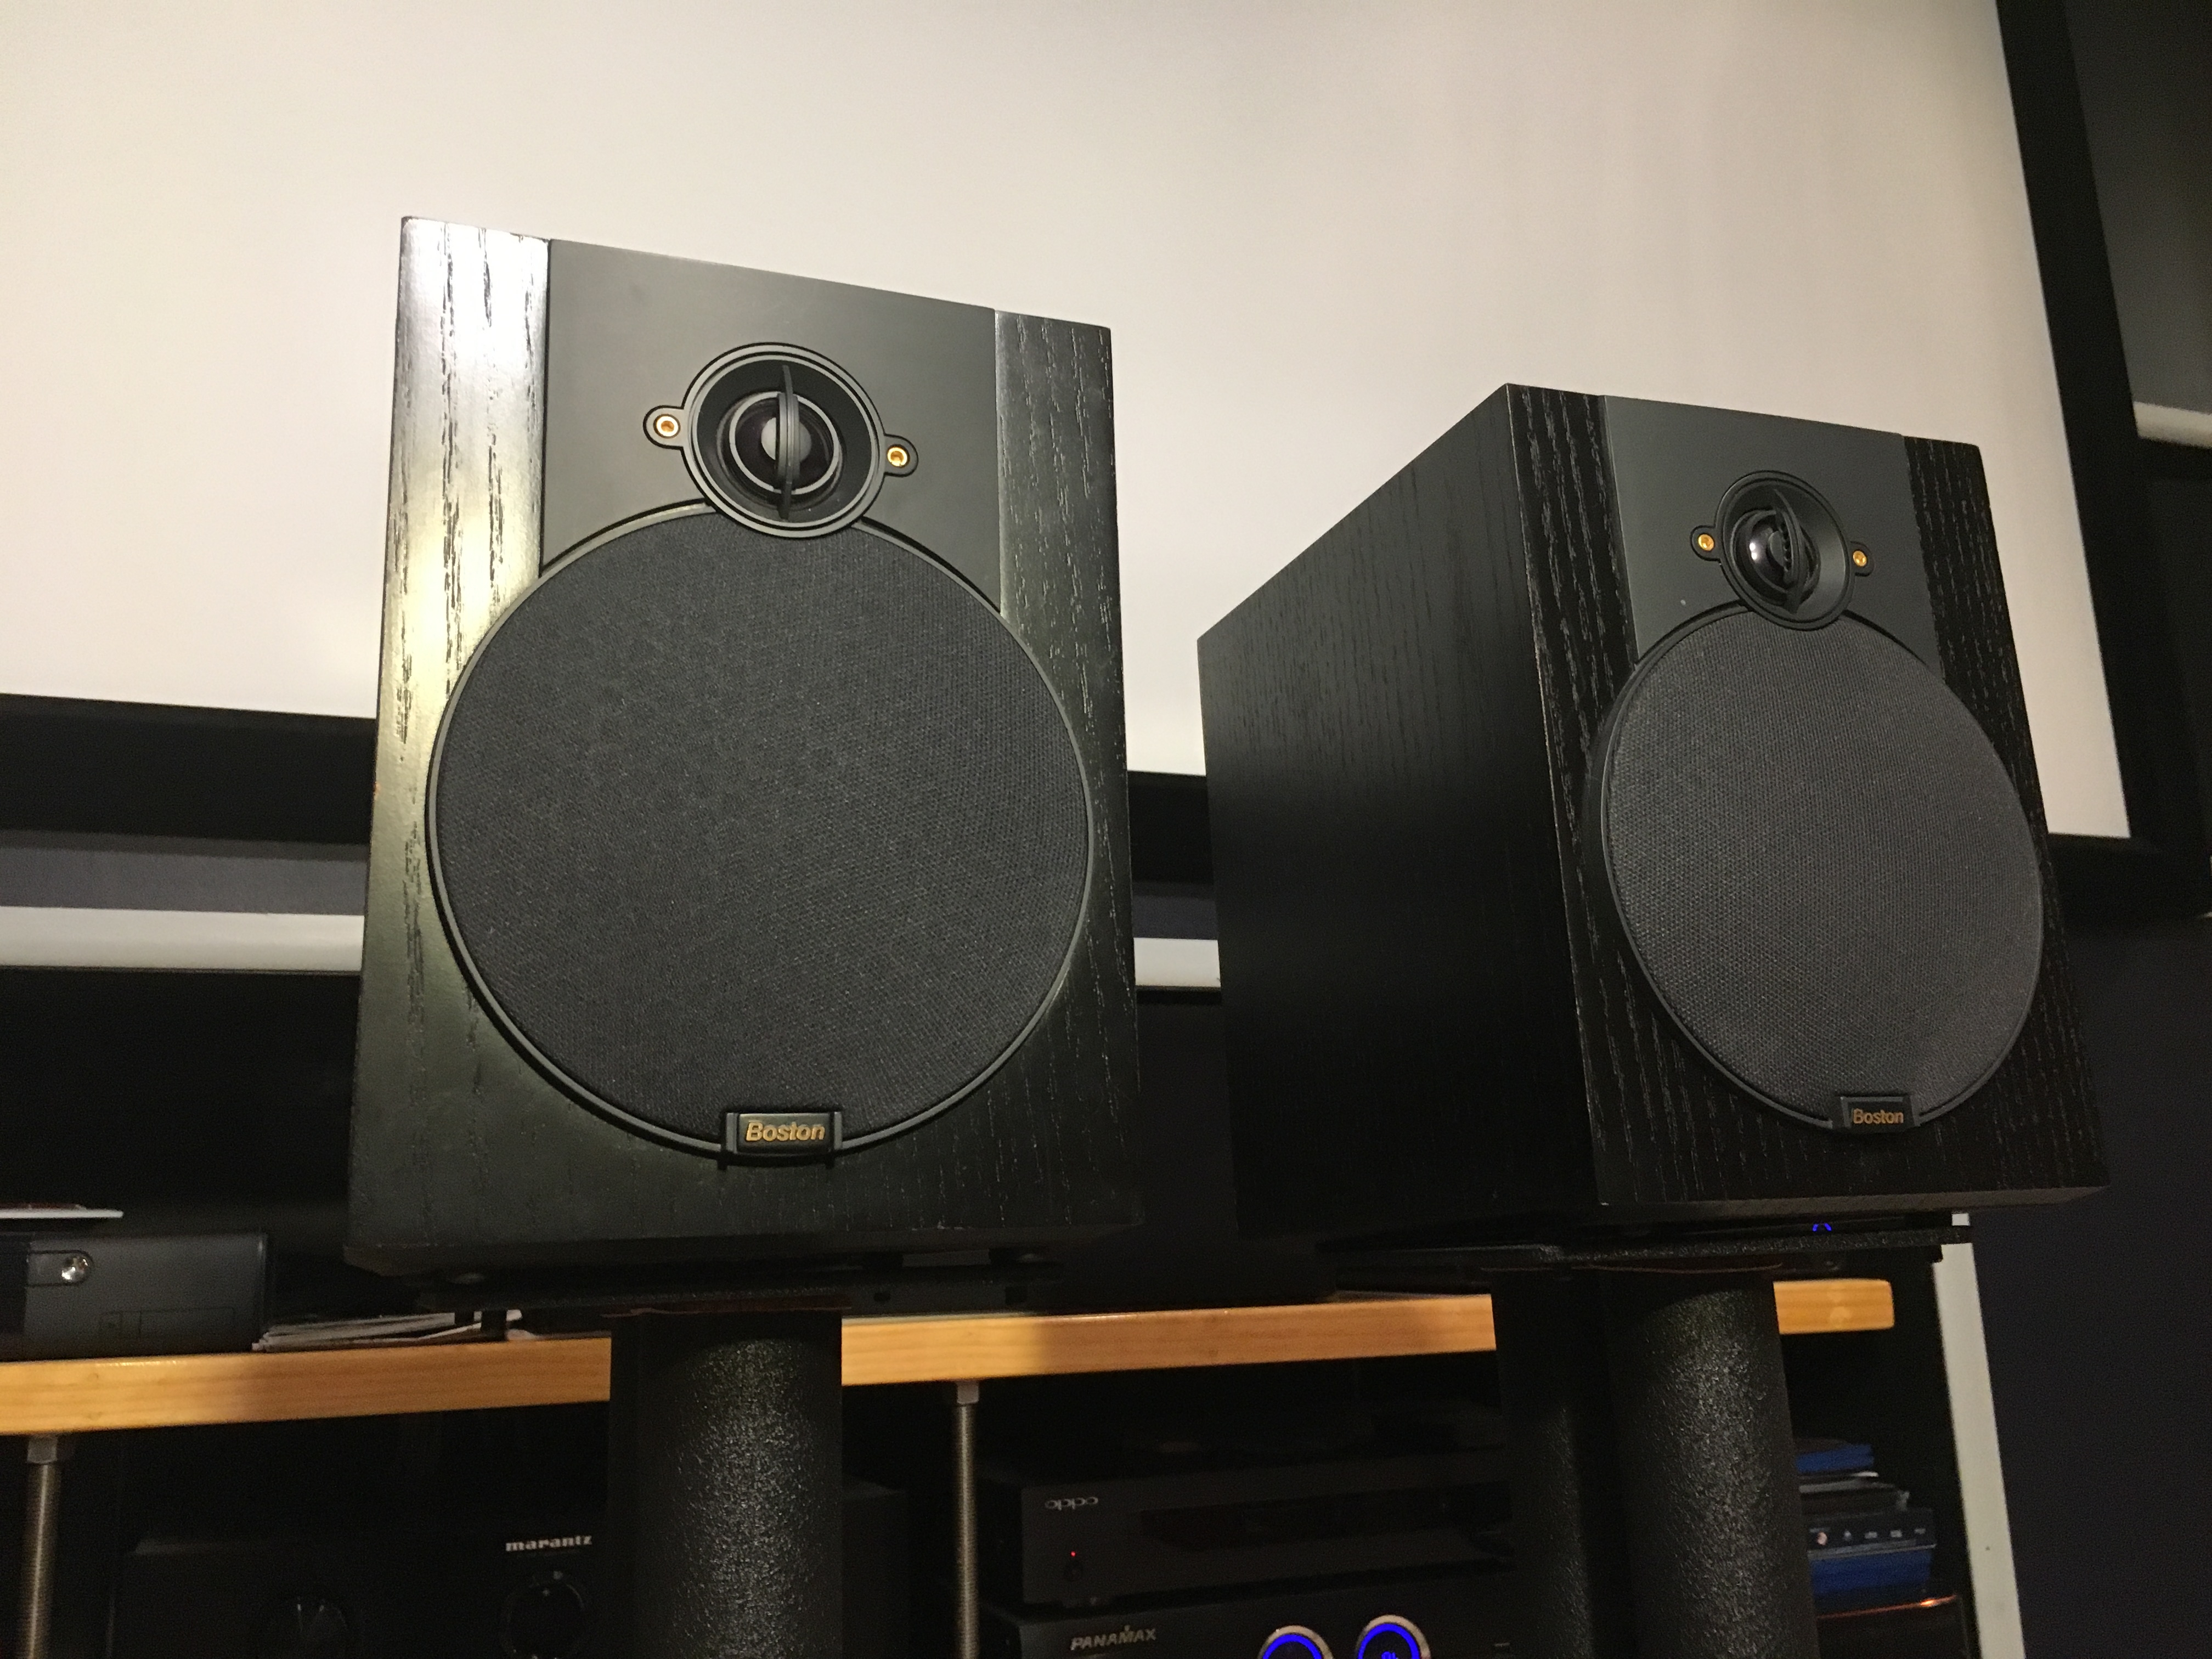 Boston Acoustics Vr Speakers For Sale Complete 71 Or Will A 250 Zec2vhzq96ch